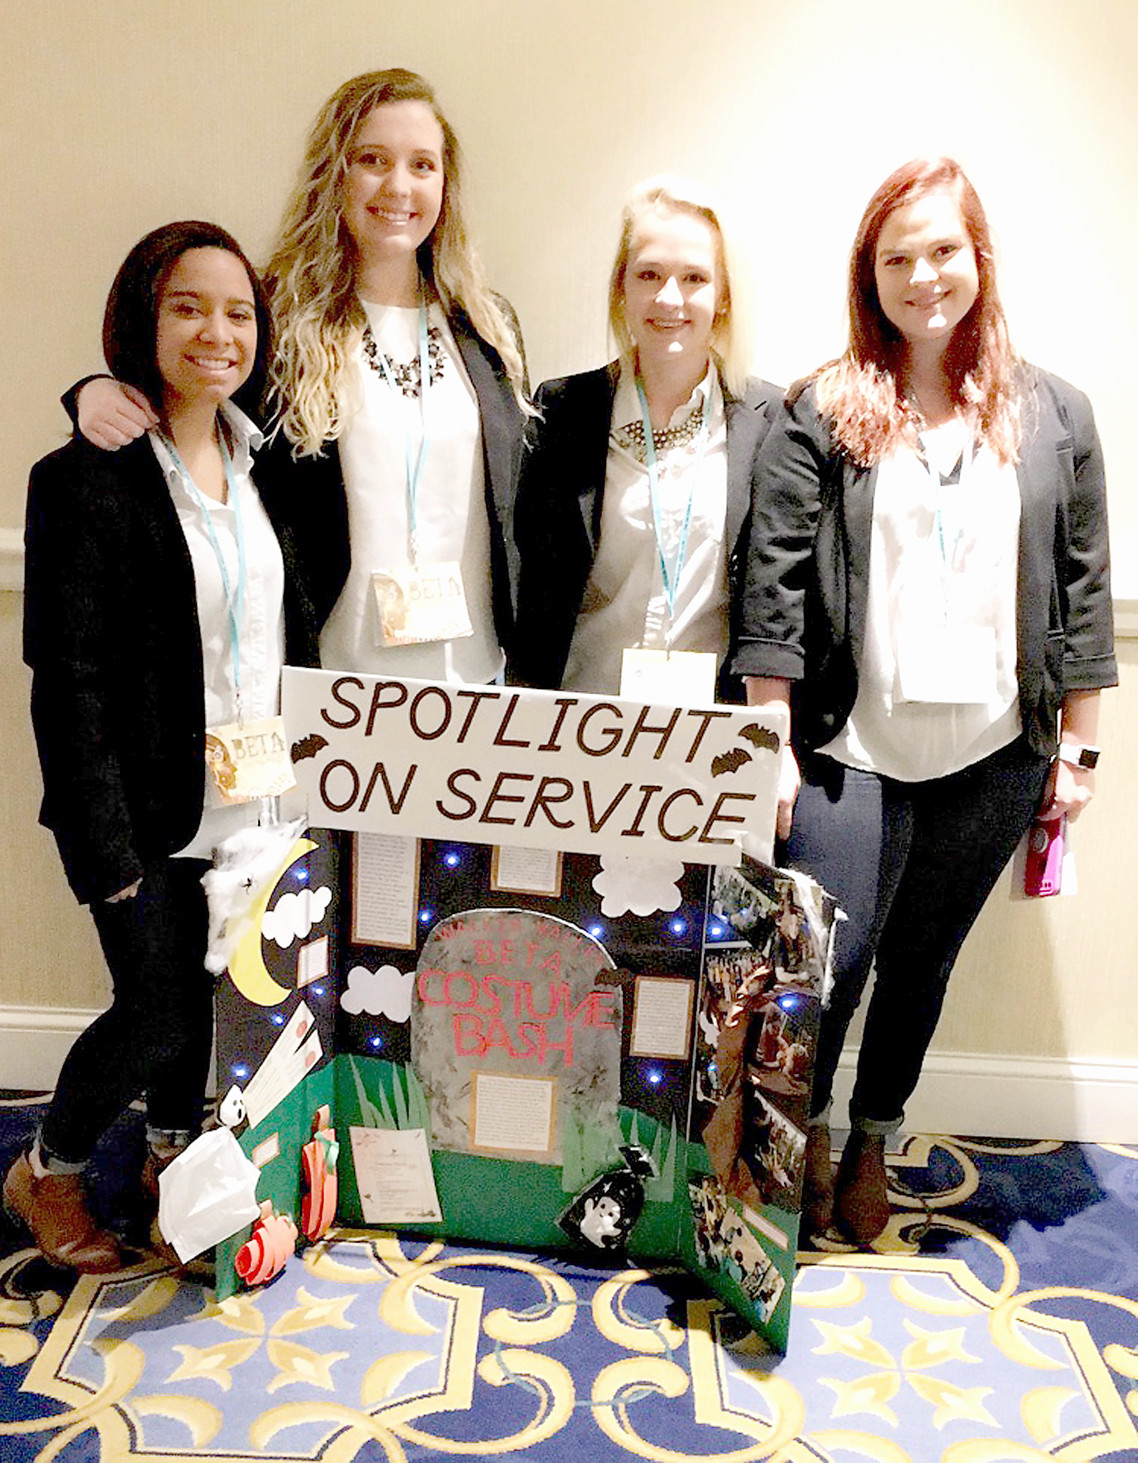 THE TEAM of Gaby Burse, Caroline Logan, Madeline Brooks and Jordan Fox competed and placed third overall in Spotlight on Service during the recent state Beta Club convention. The team highlighted the 2017 Beta Club Costume Bash where they collected over 200 Halloween costumes for children in the community, and held an event where they could pick out costumes and take part in other fun activities.